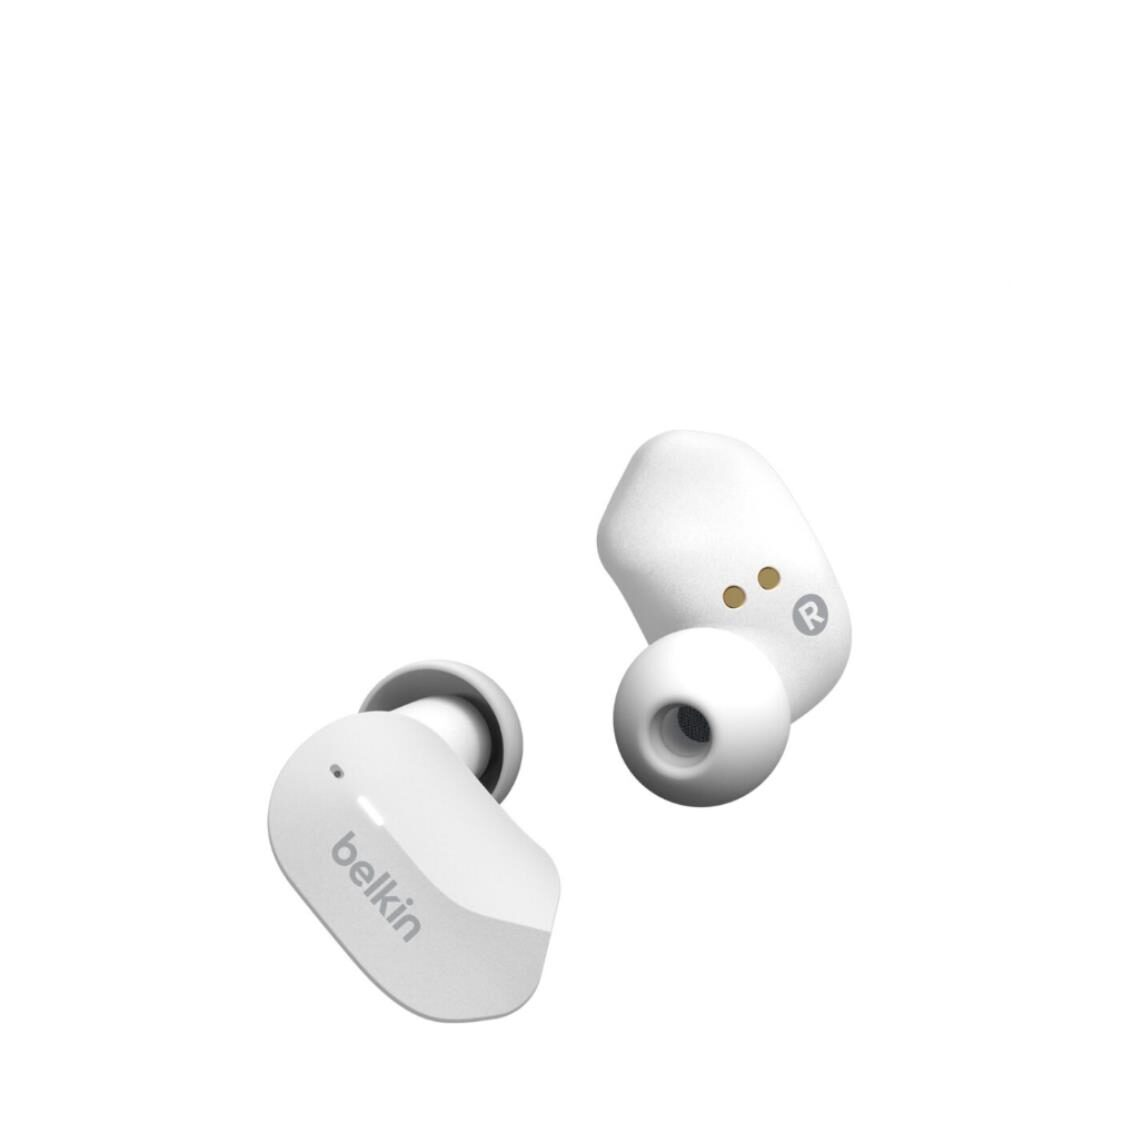 Belkin Soundform True Wireless Earbuds White